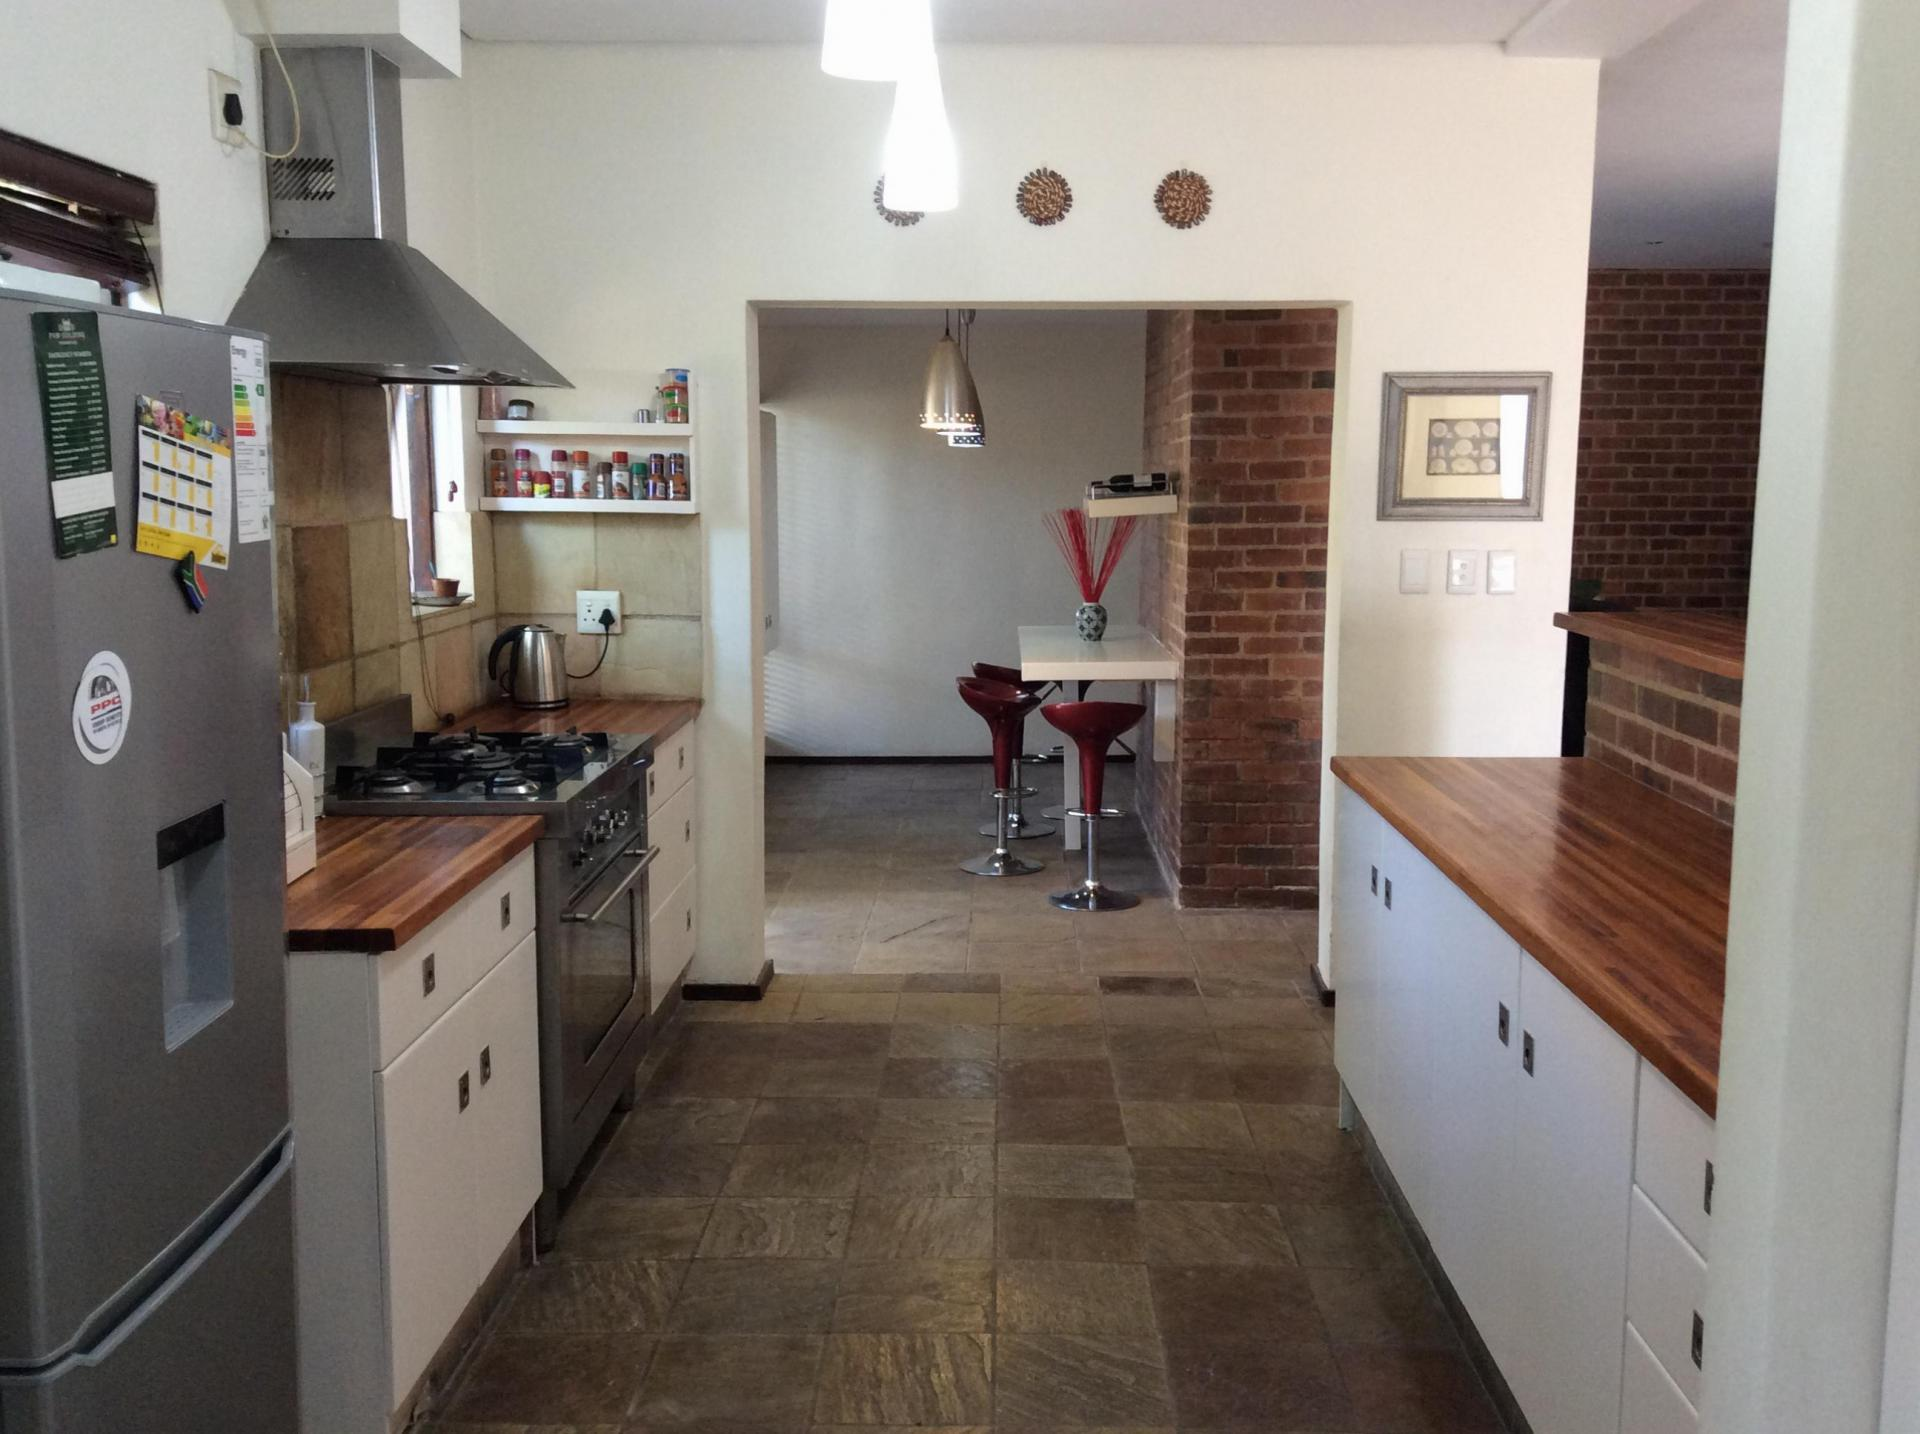 6 bedroom house for sale for sale in dainfern home sell for Kitchen fitters gauteng